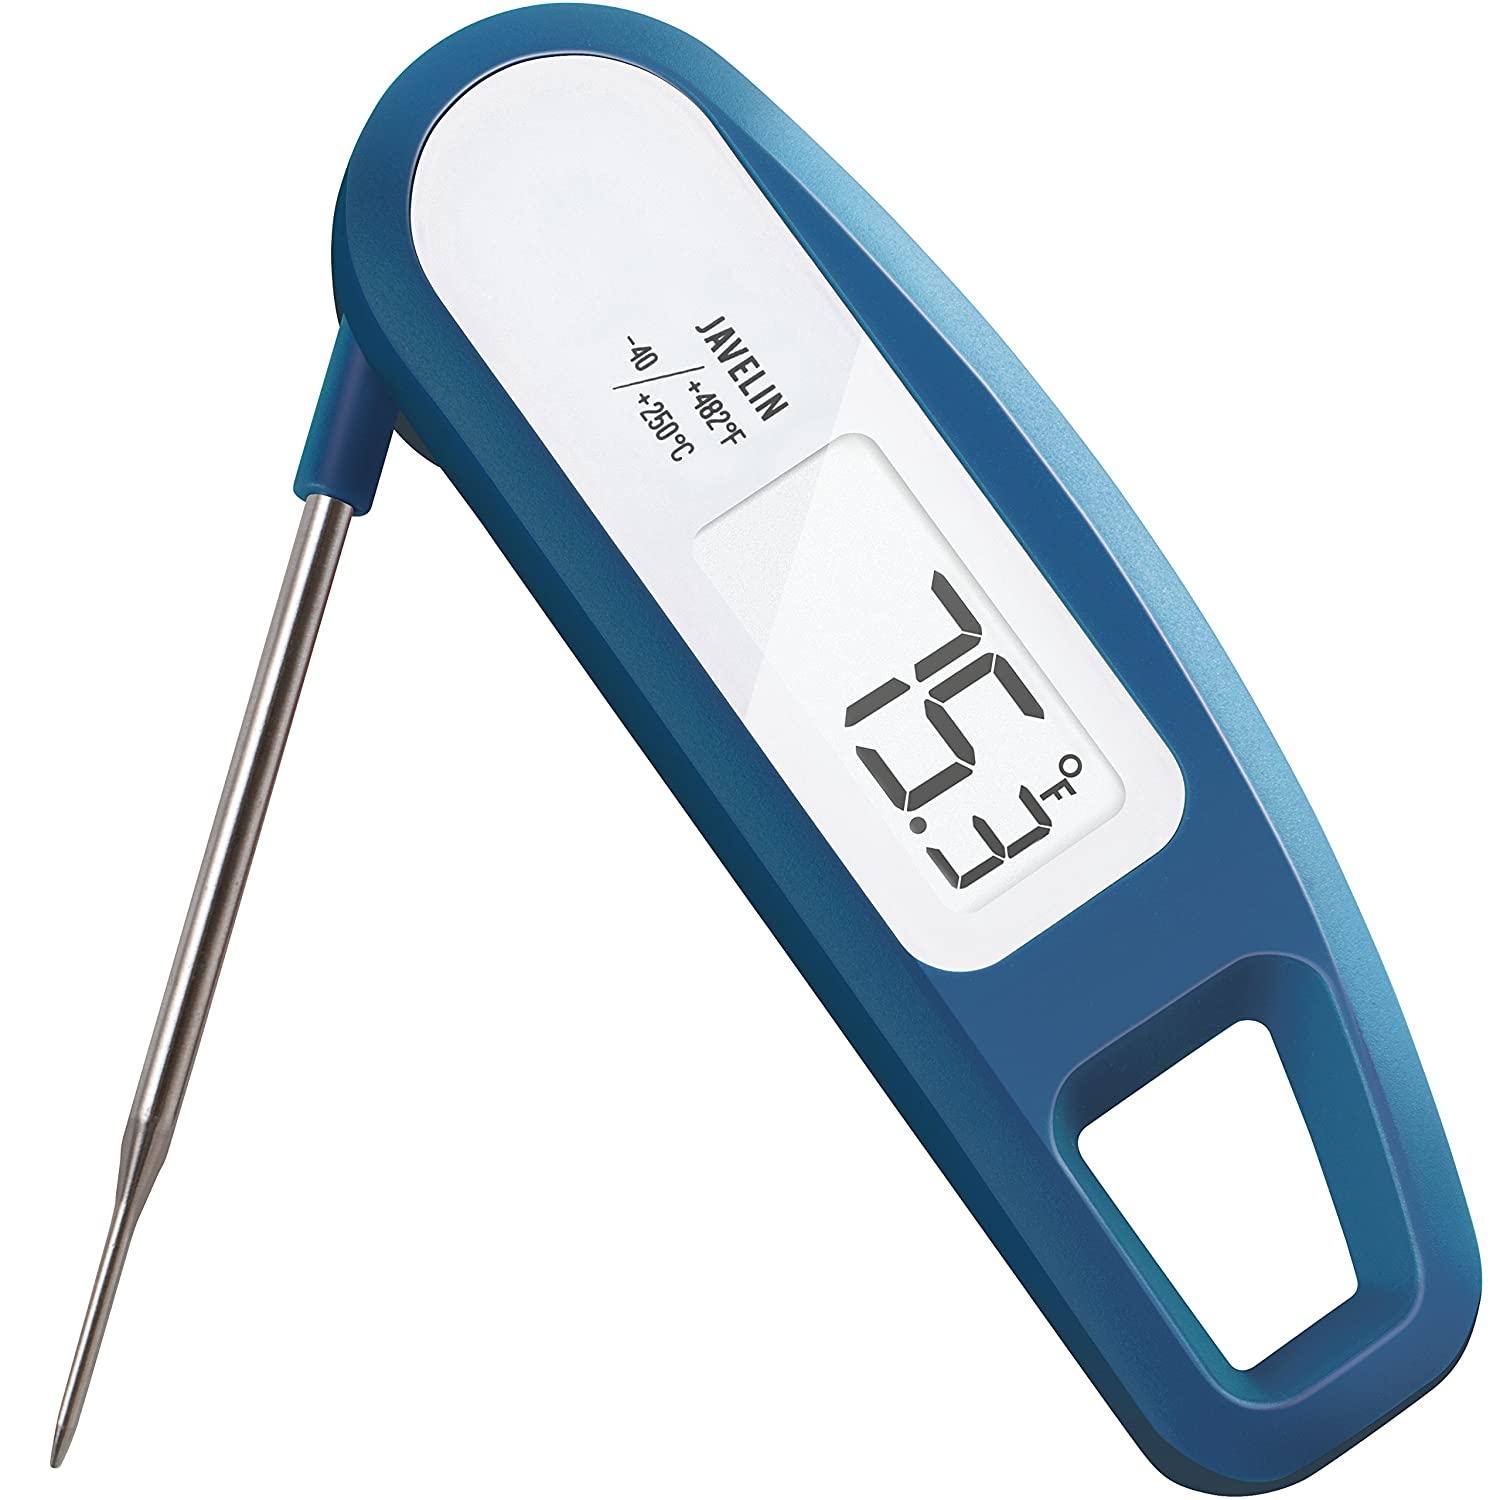 Amazon - Lavatools Thermowand Digital Meat Thermometer - $18.74